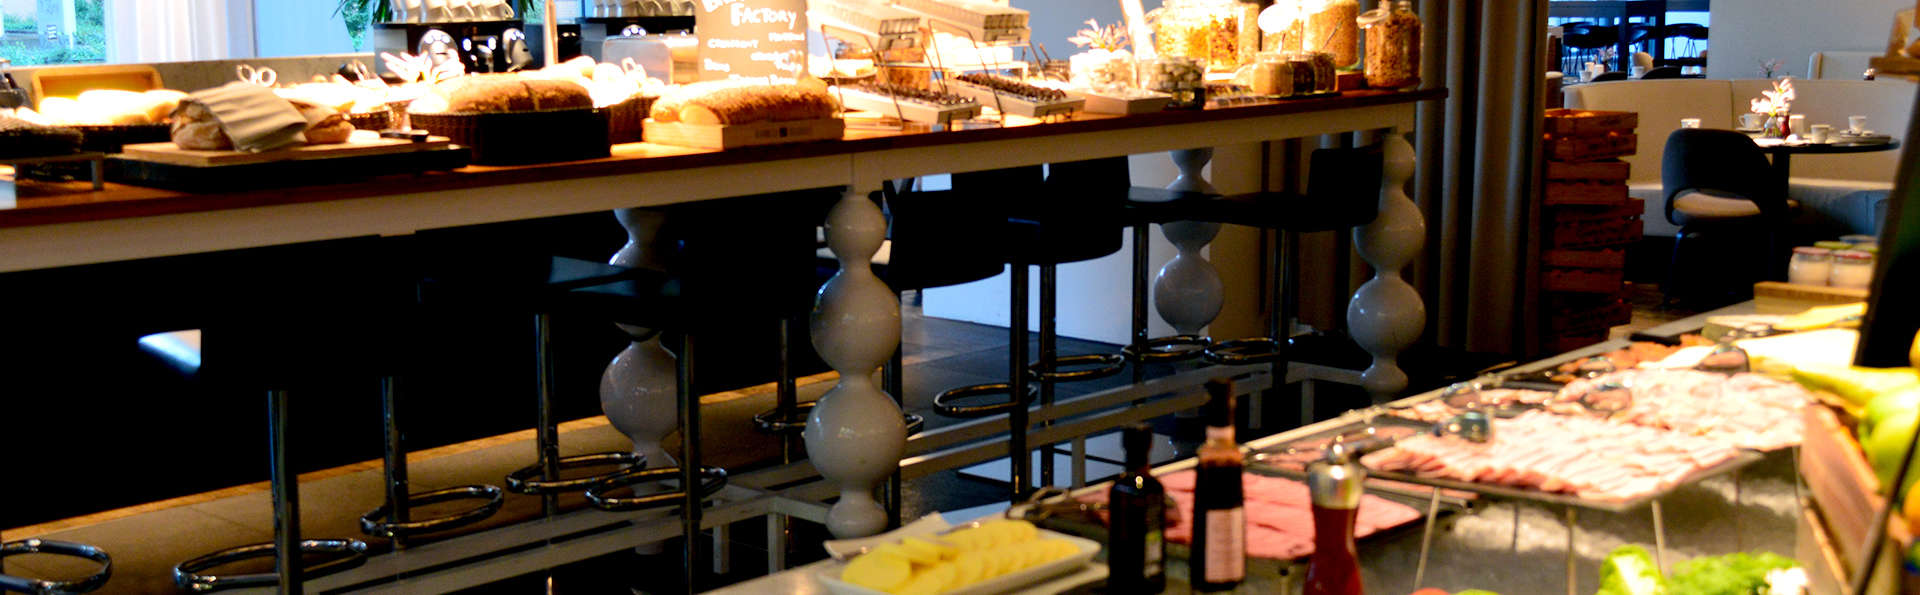 Pullman Eindhoven Cocagne - EDIT_NEW_BREAKFAST.jpg